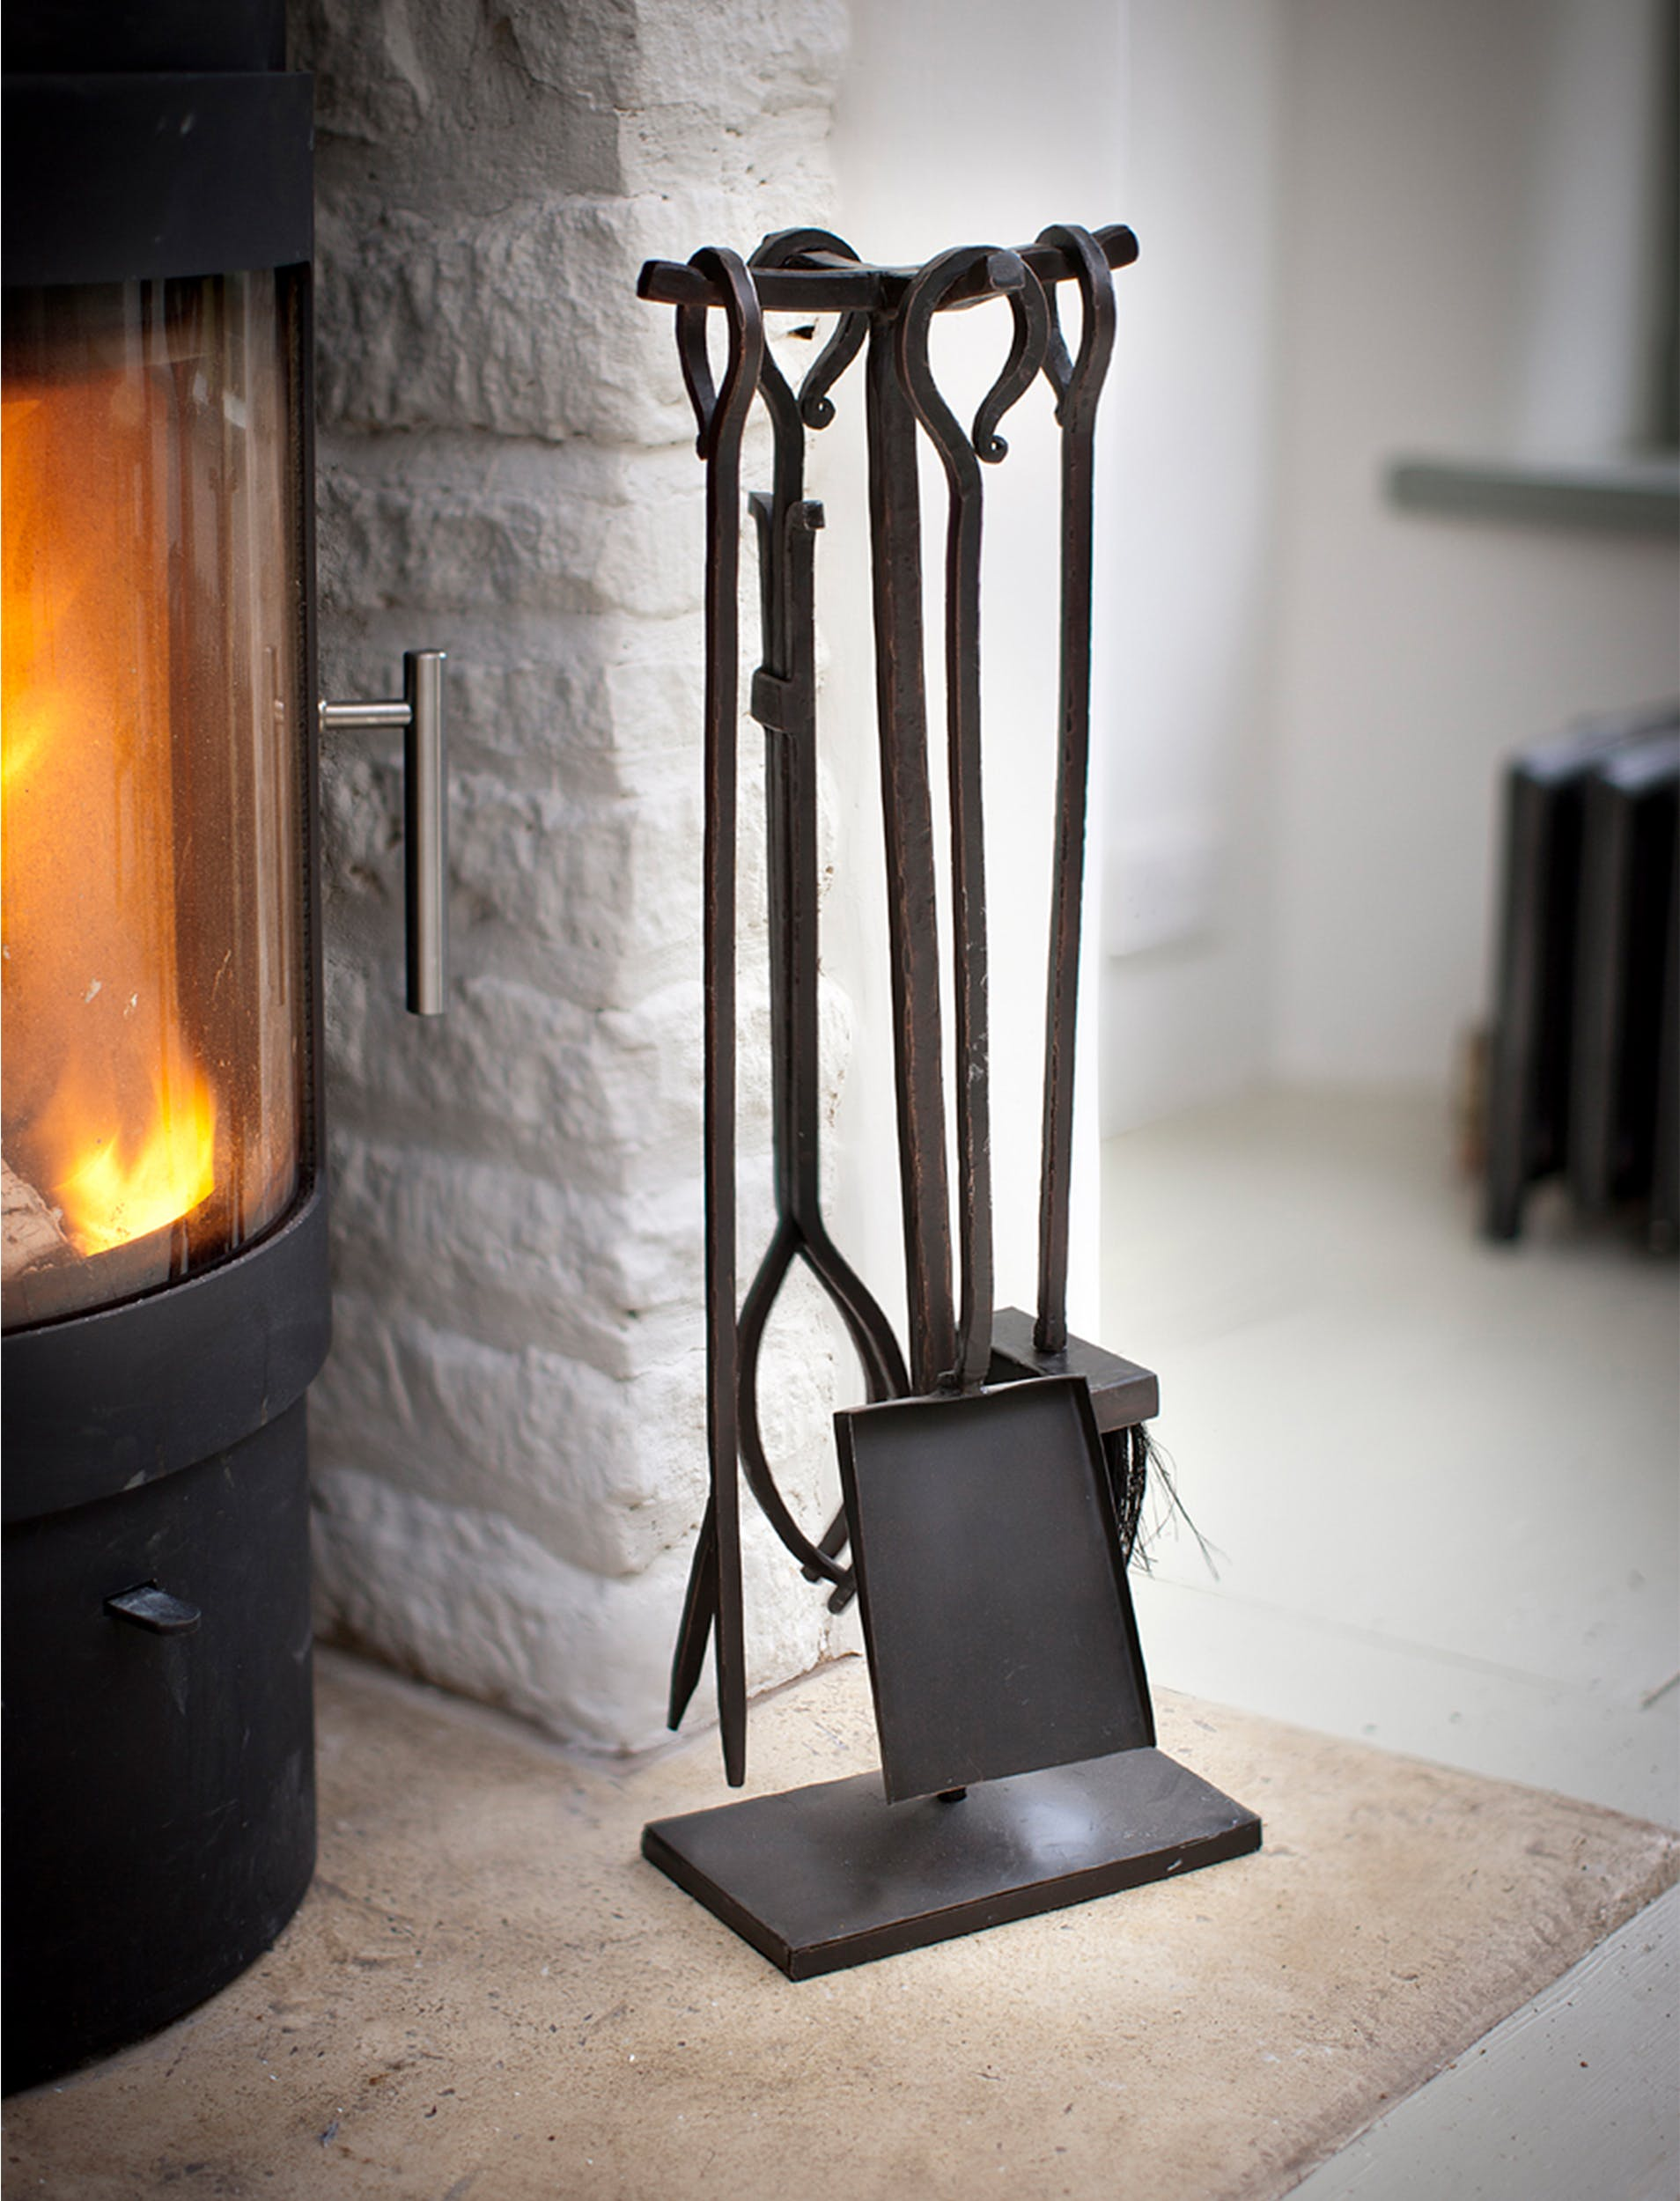 Wrought Iron Fireside Set of 4 Tools    Garden Trading